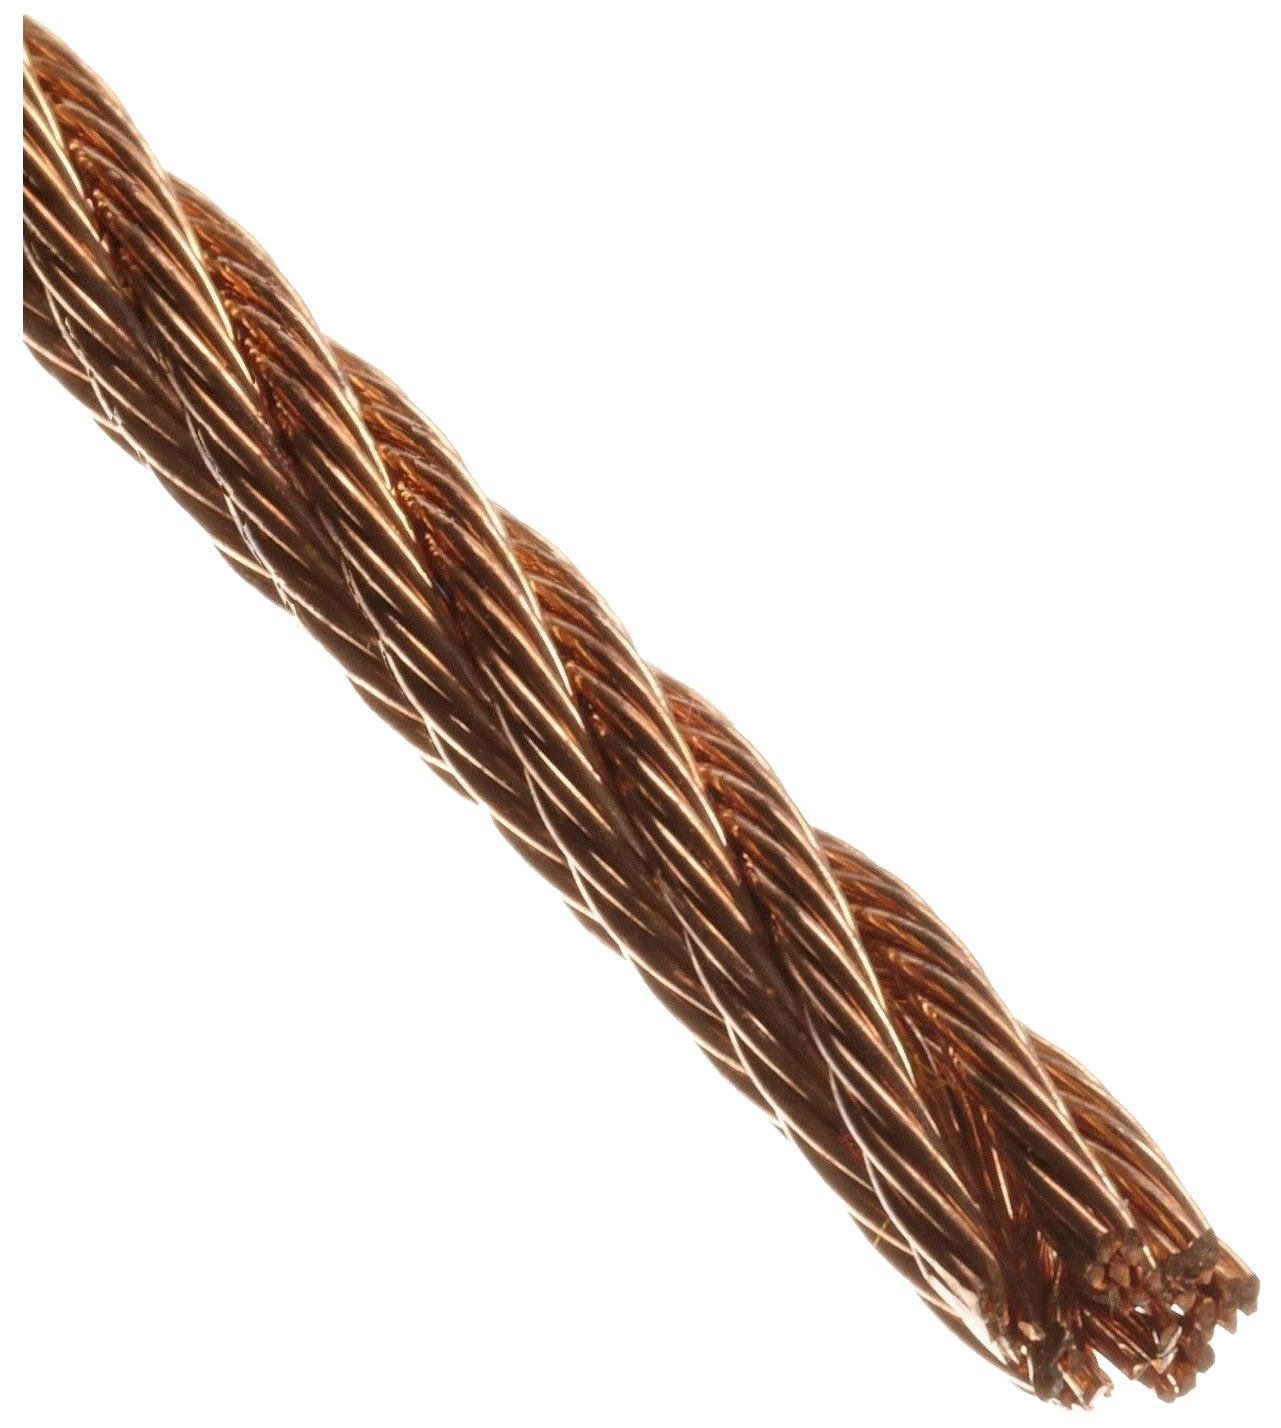 Bare Rope Stranded Copper Wire: Electronic Component Wire: Amazon ...